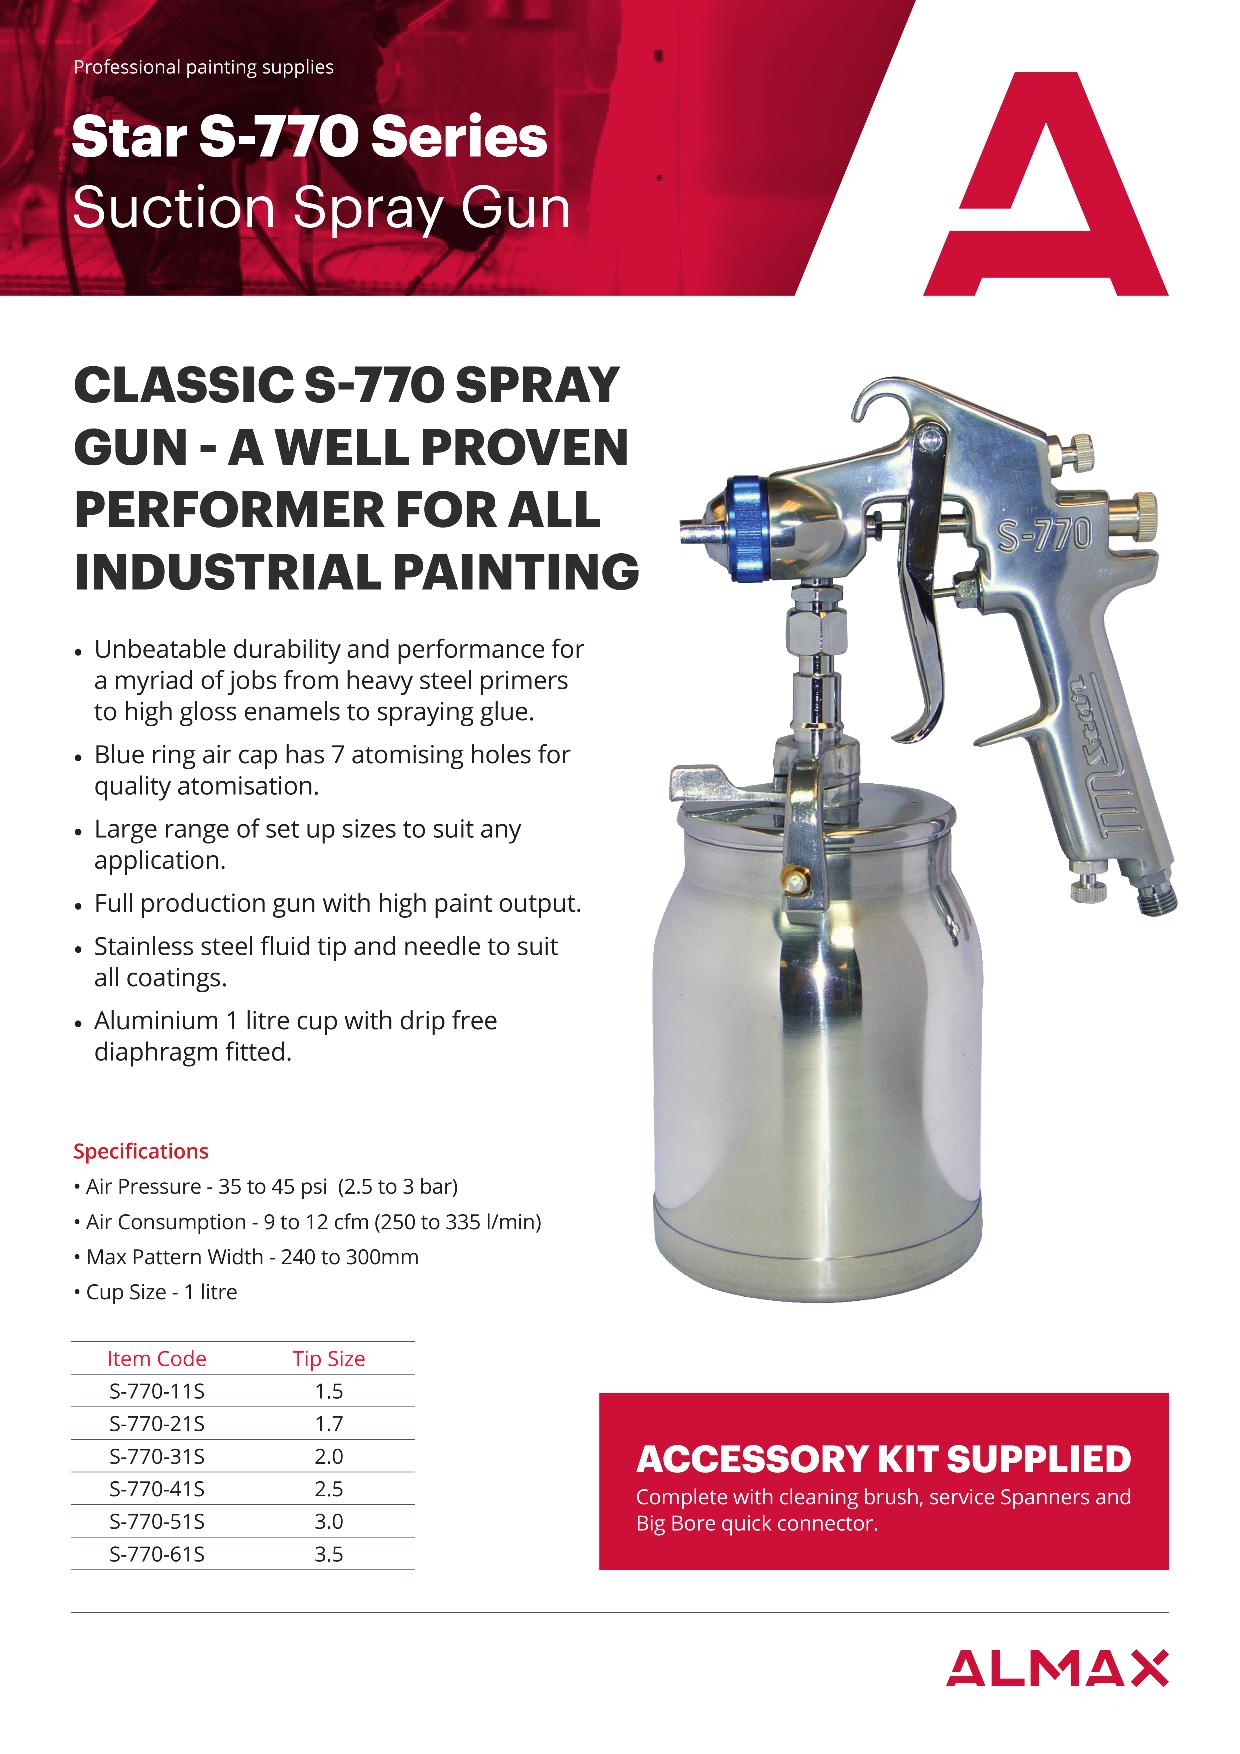 Star S-770 Series Spray Gun